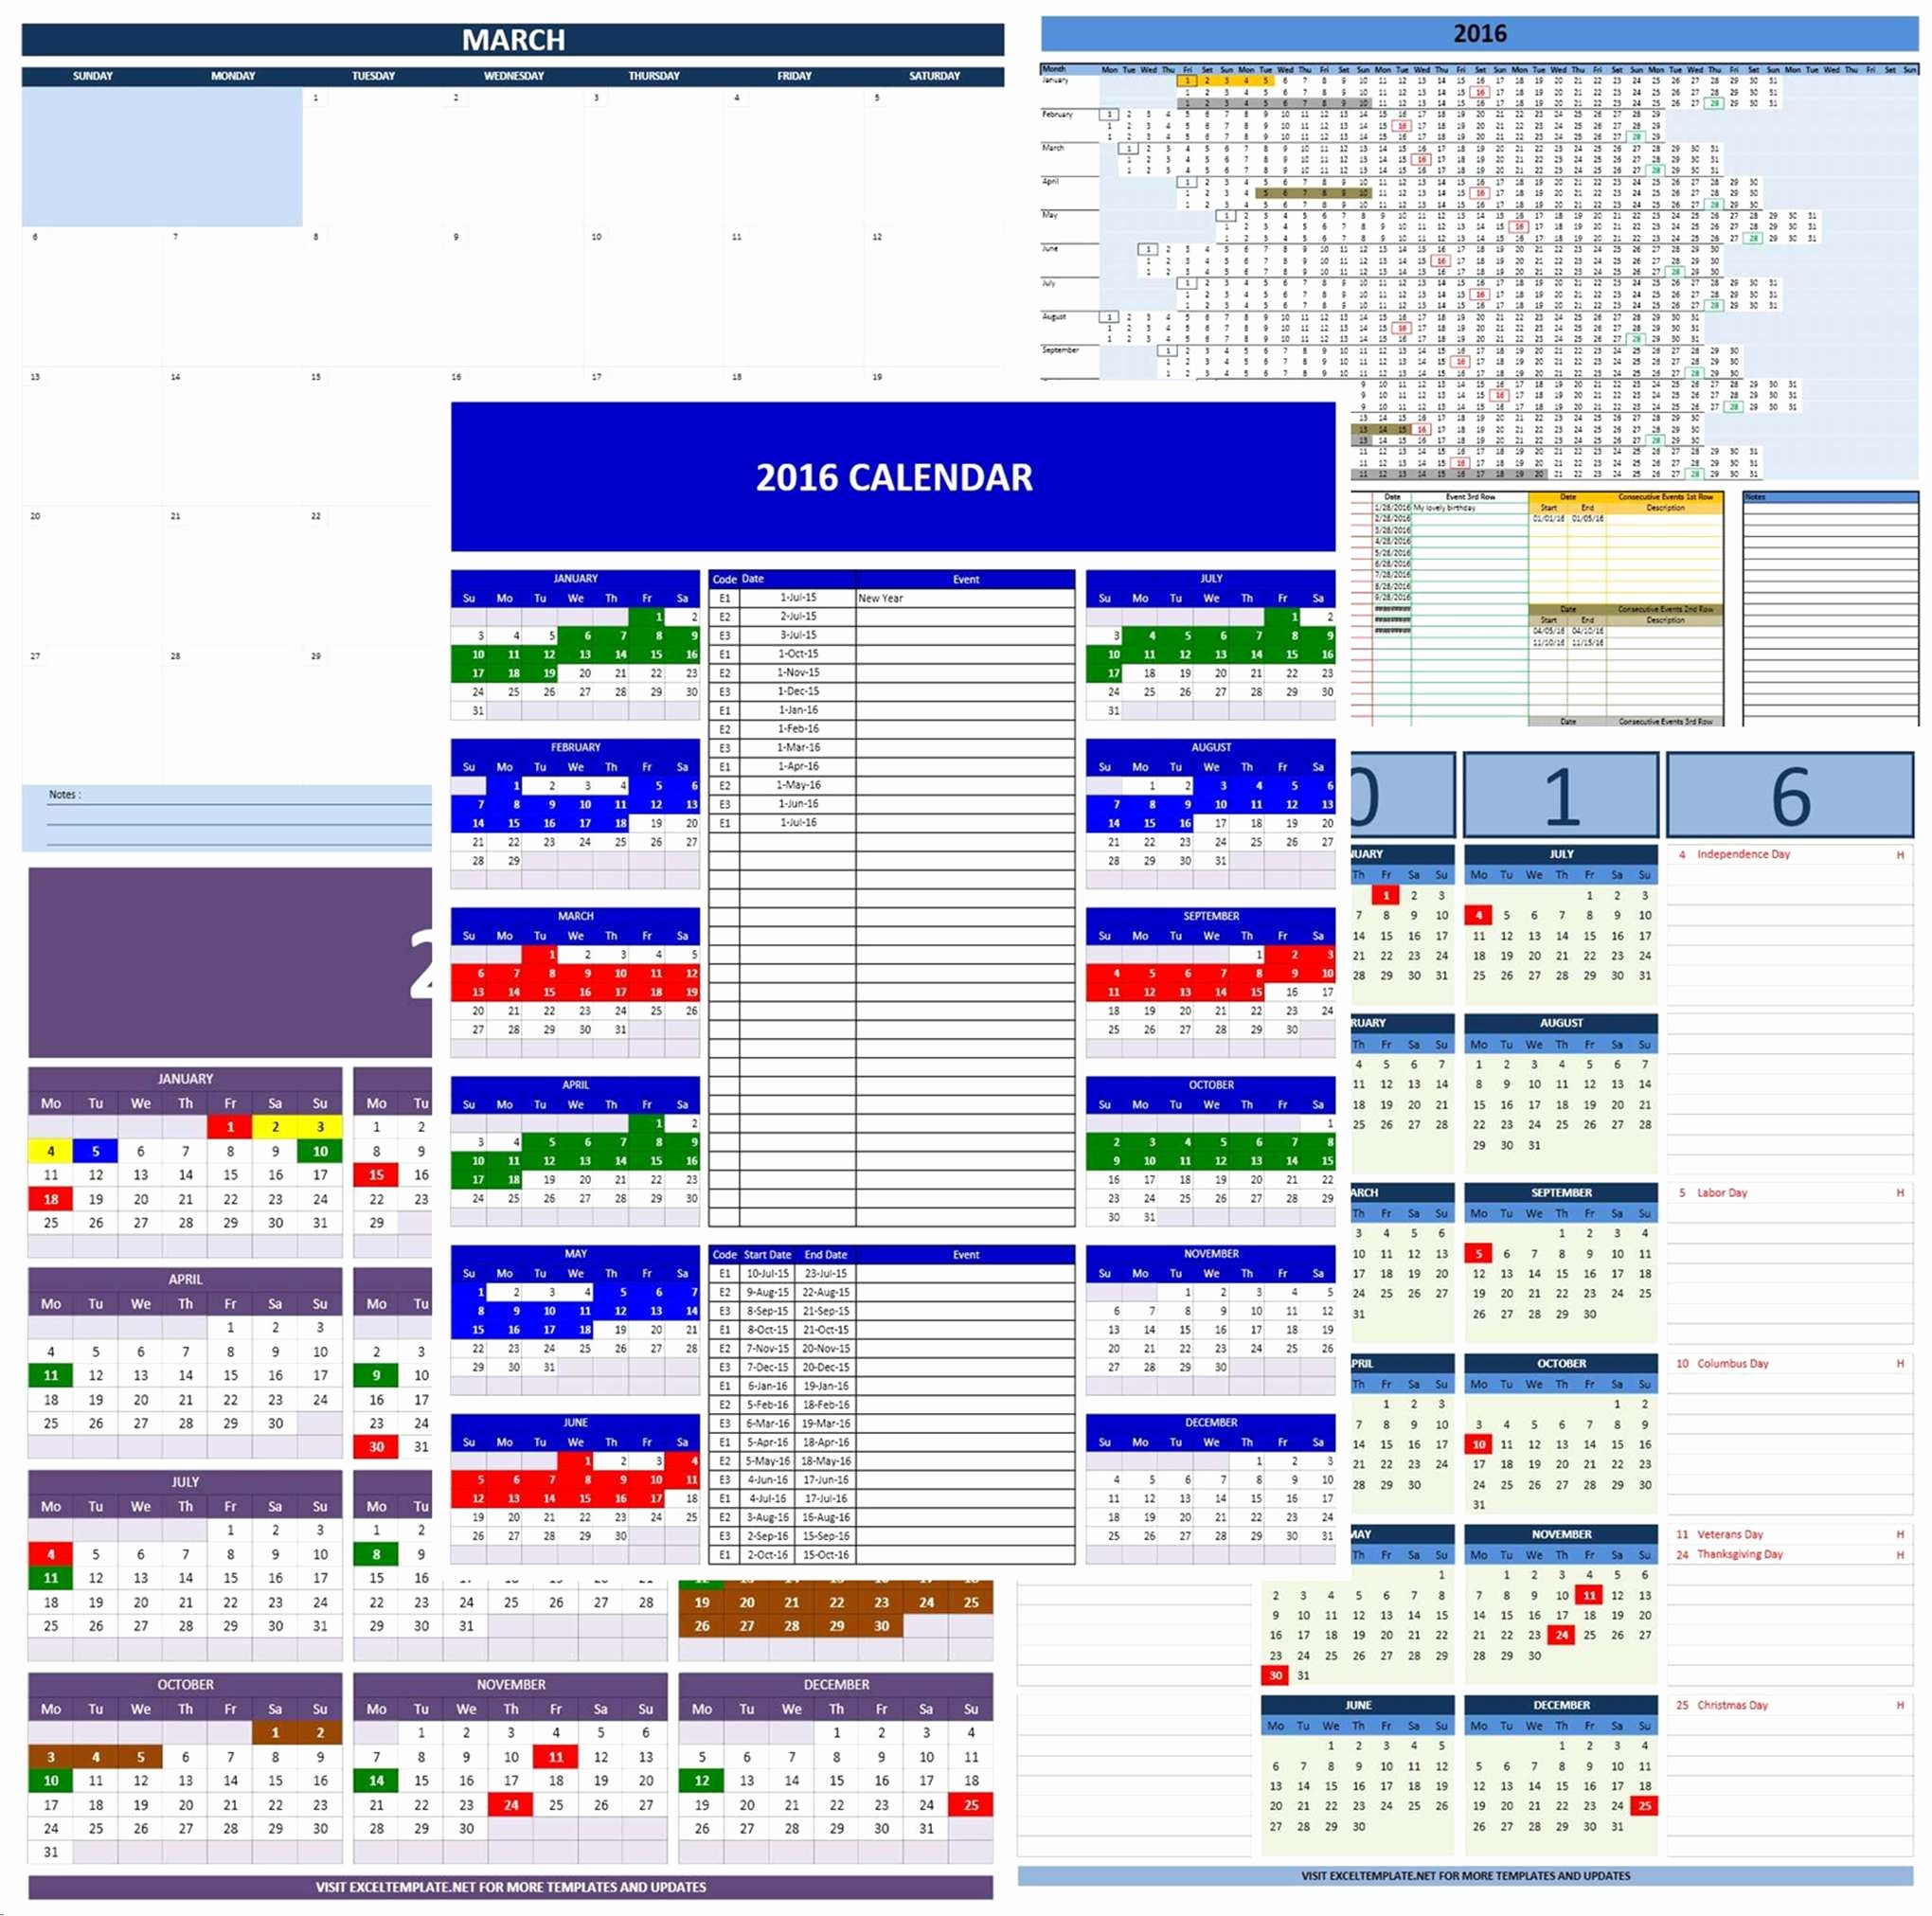 2016 Calendar Excel with Holidays Beautiful 2016 Calendars